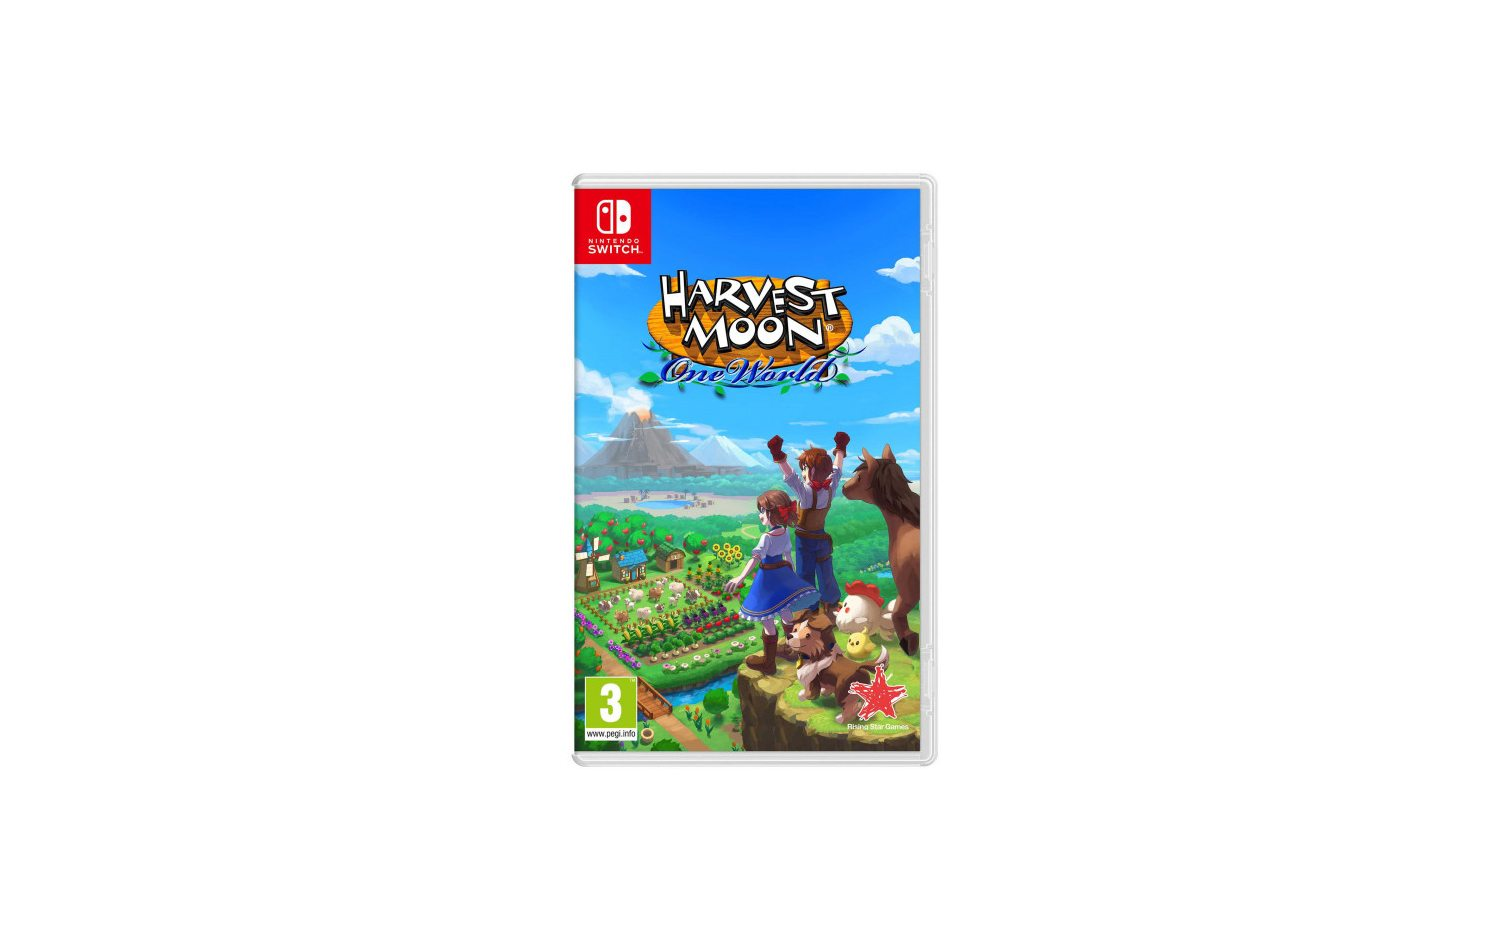 Nintendo Harvest Moon: One World Nintendo